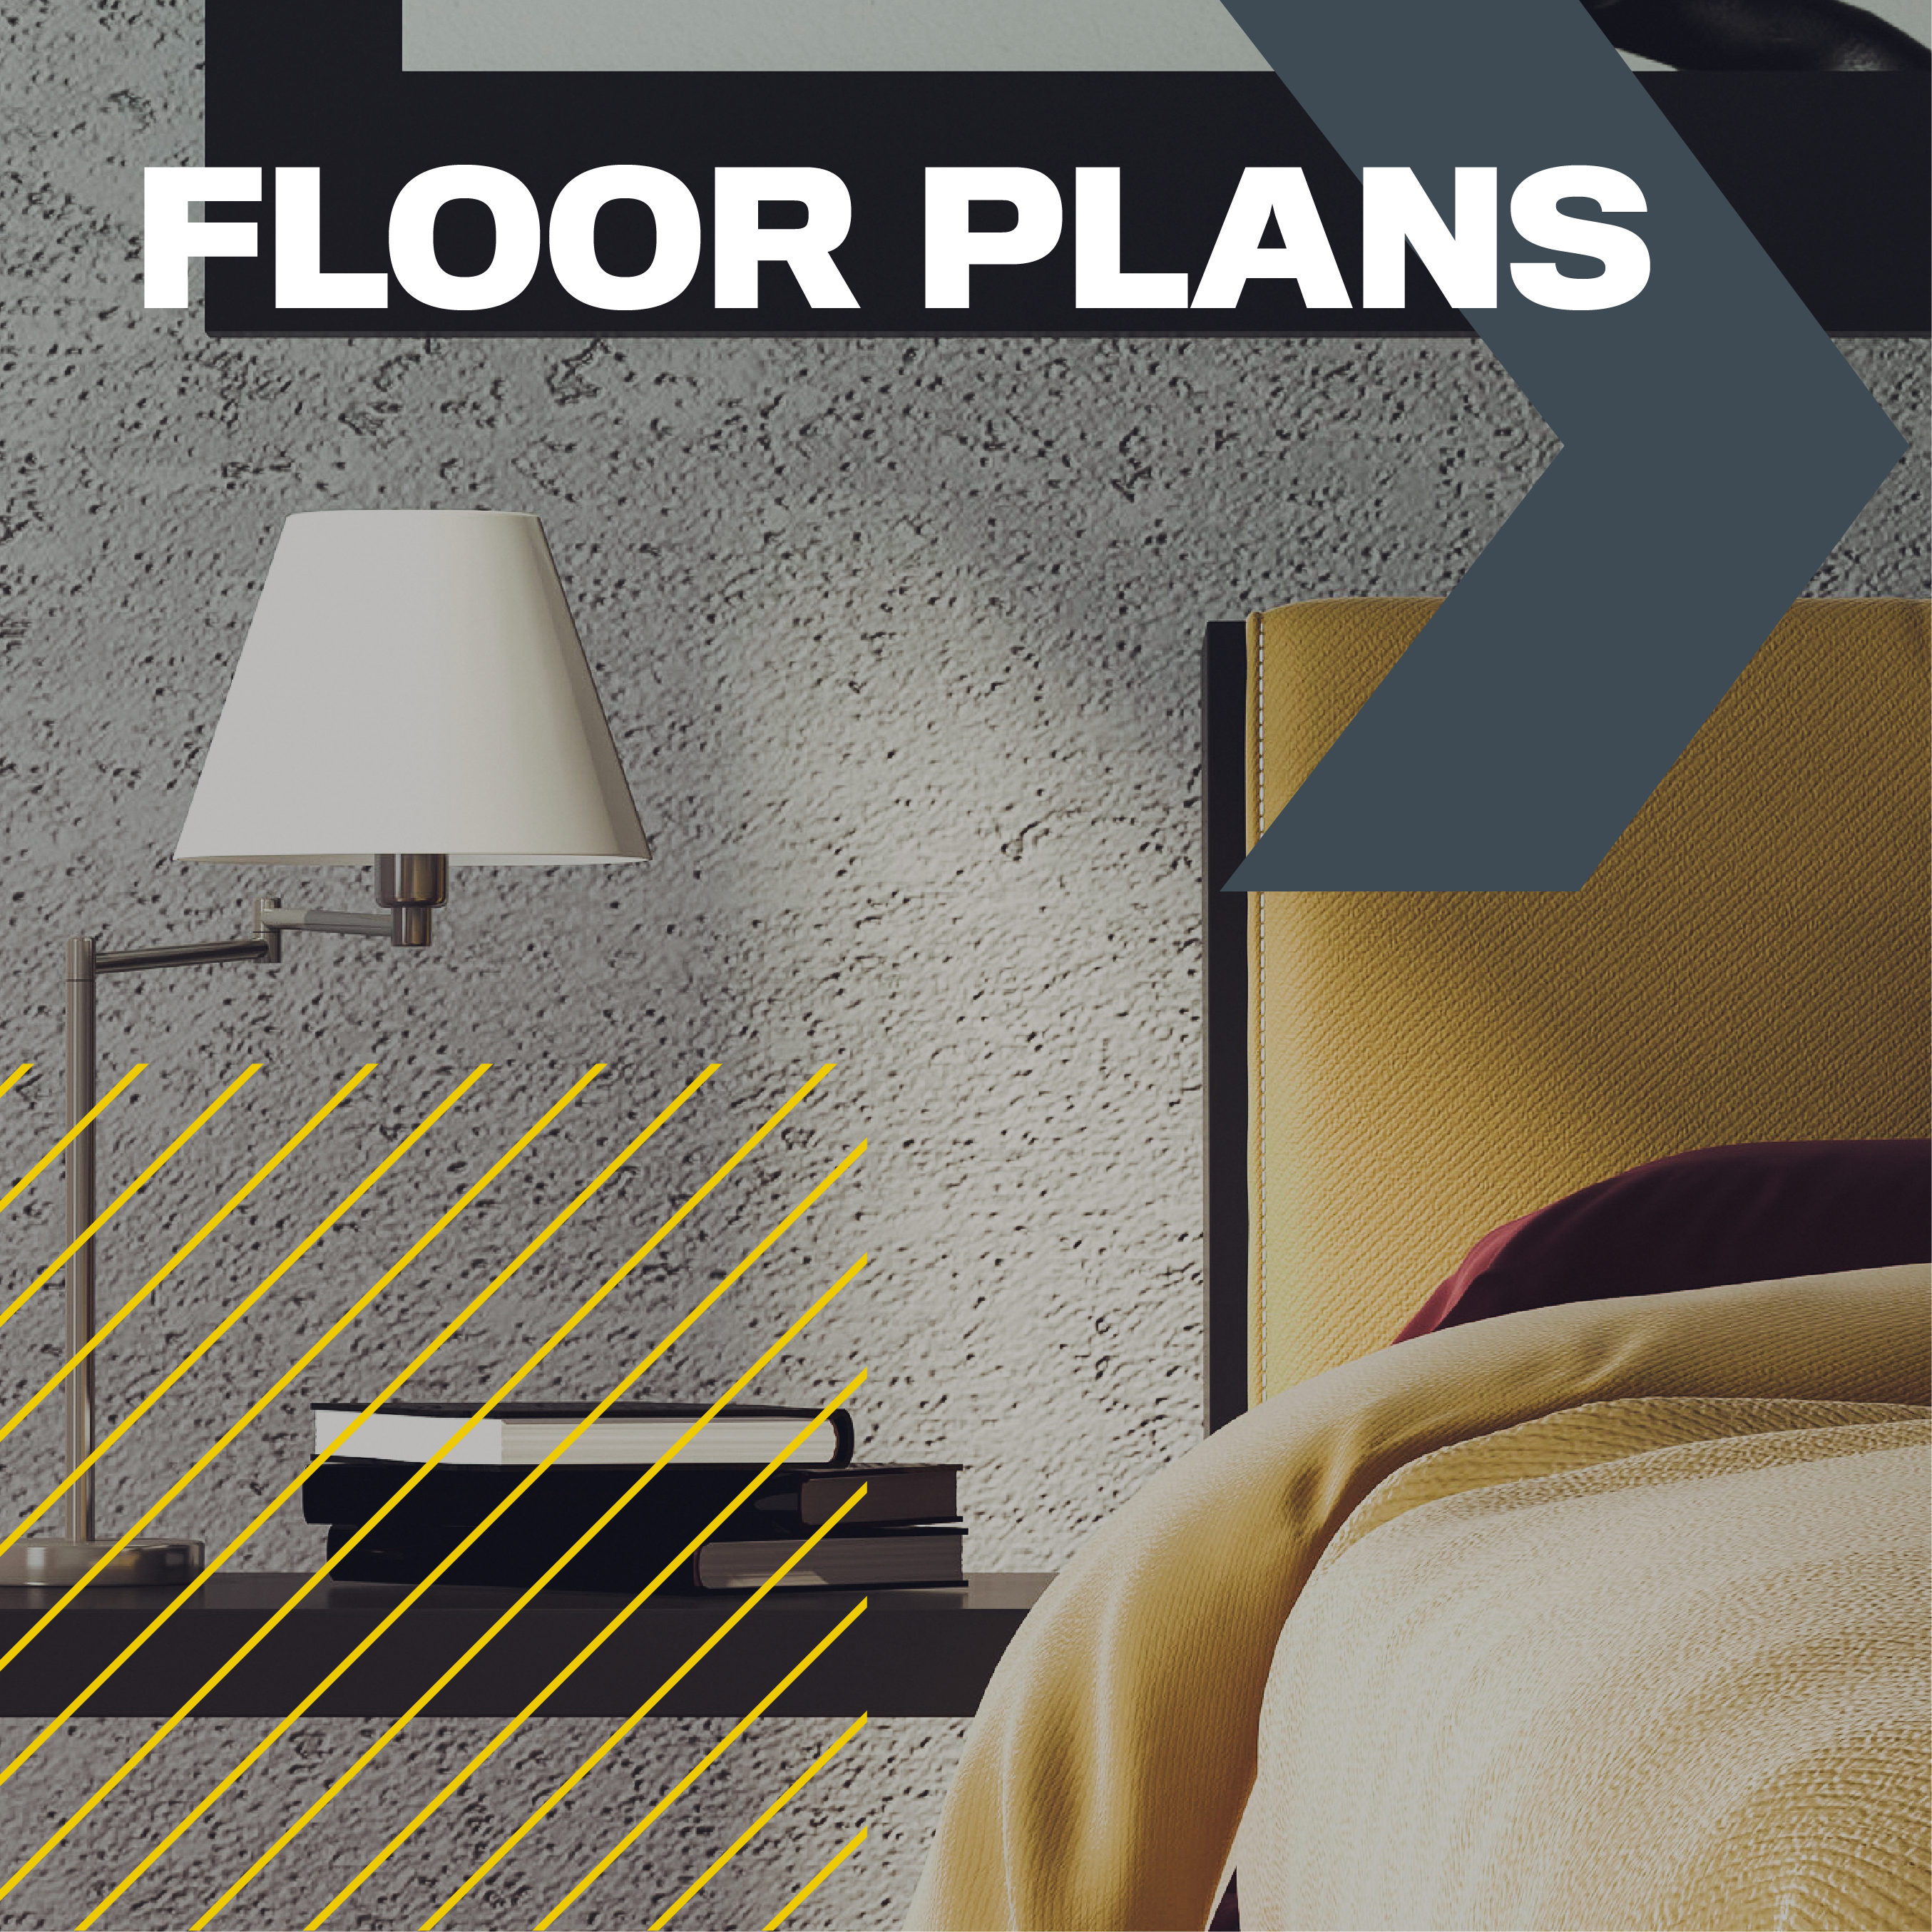 View our floor plans at Kinect @ Broadway in Everett, Washington